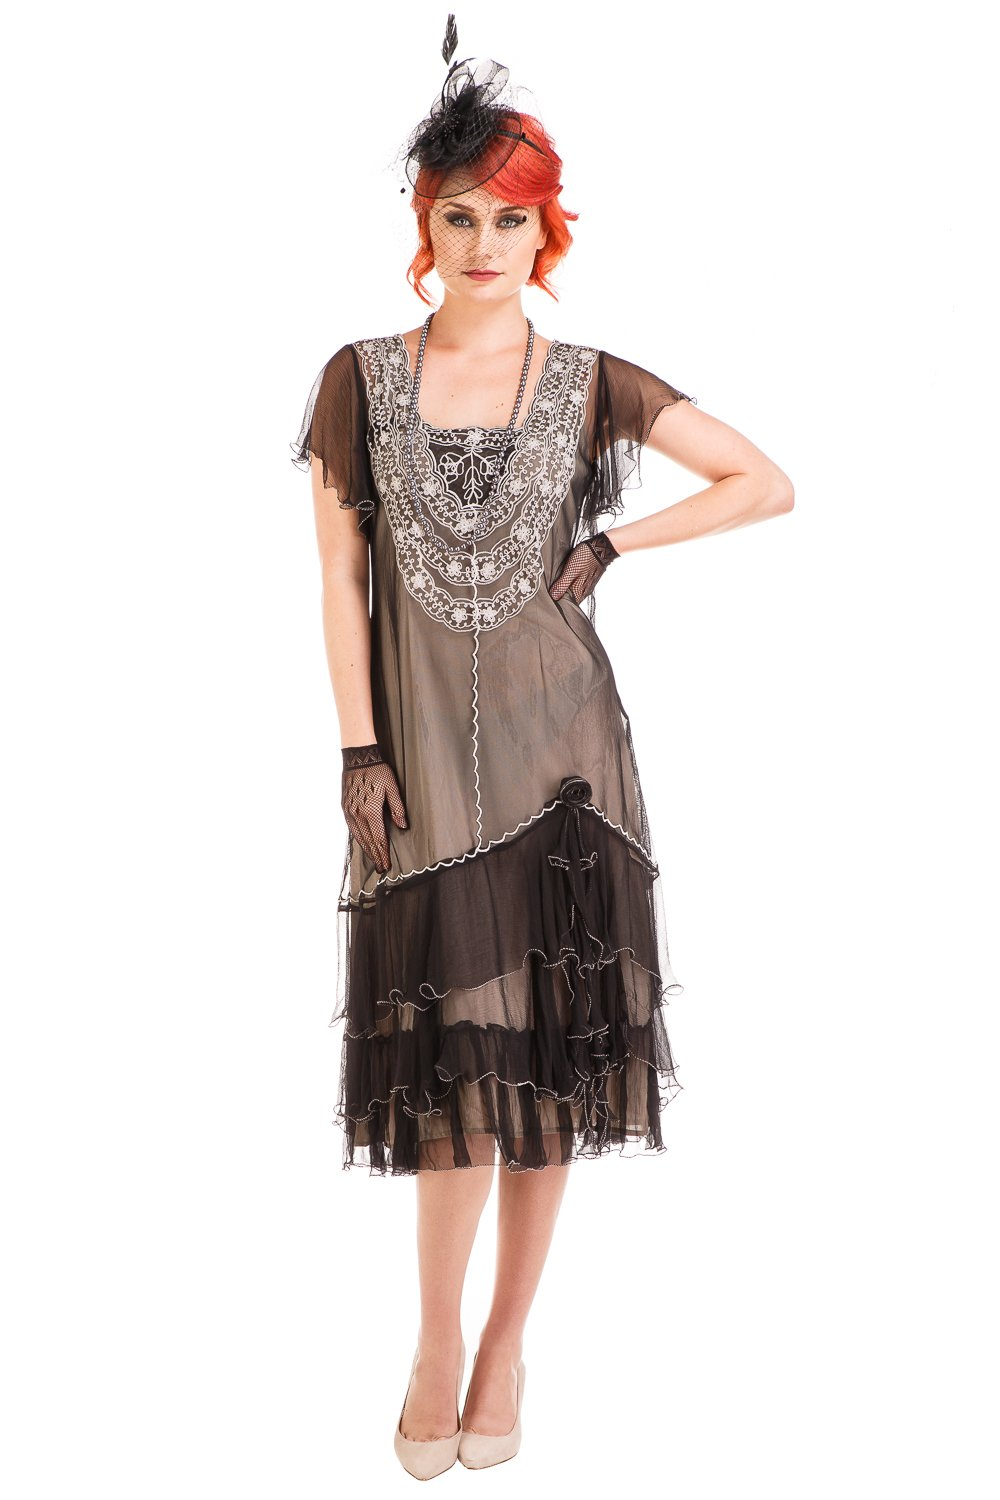 Nataya 1920's Vintage Inspired Dress-AL283